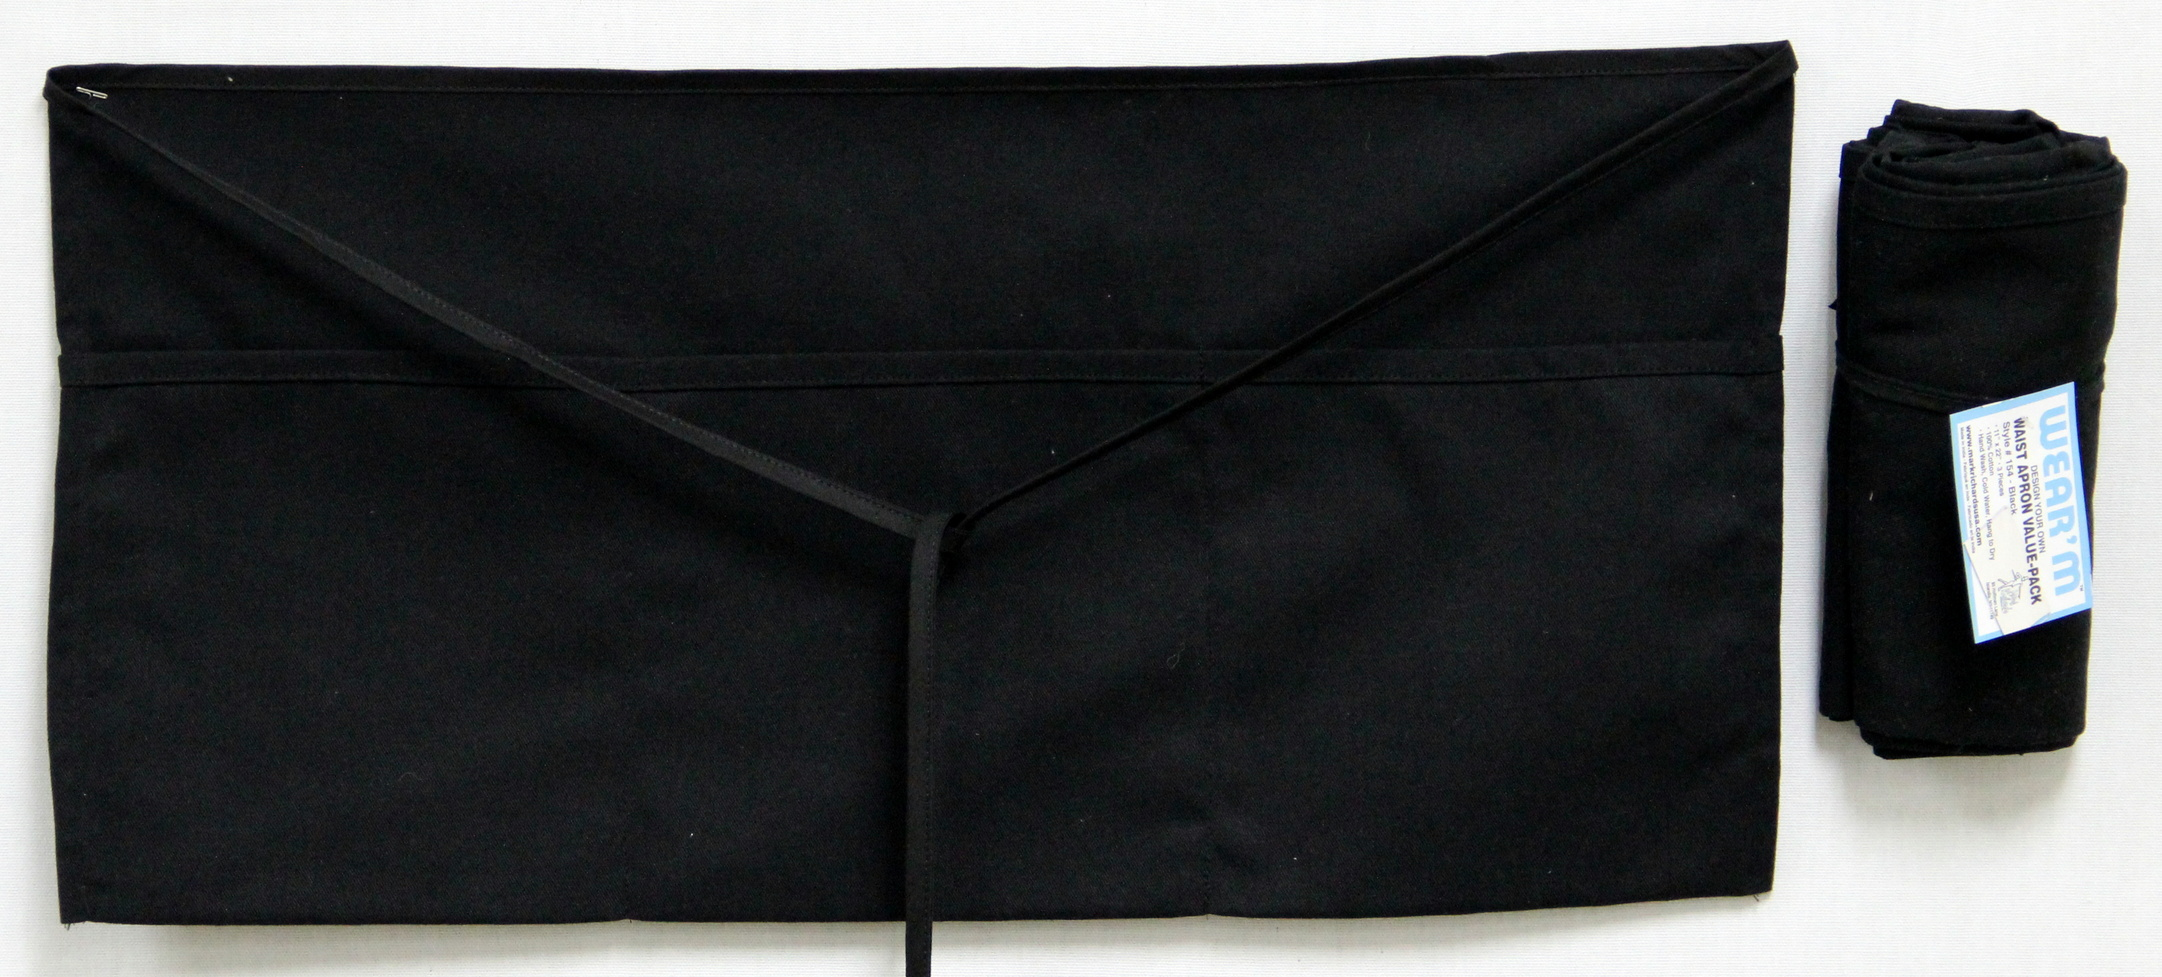 e009b9fcbf9b Wear'm Waist Apron Value Pack Black